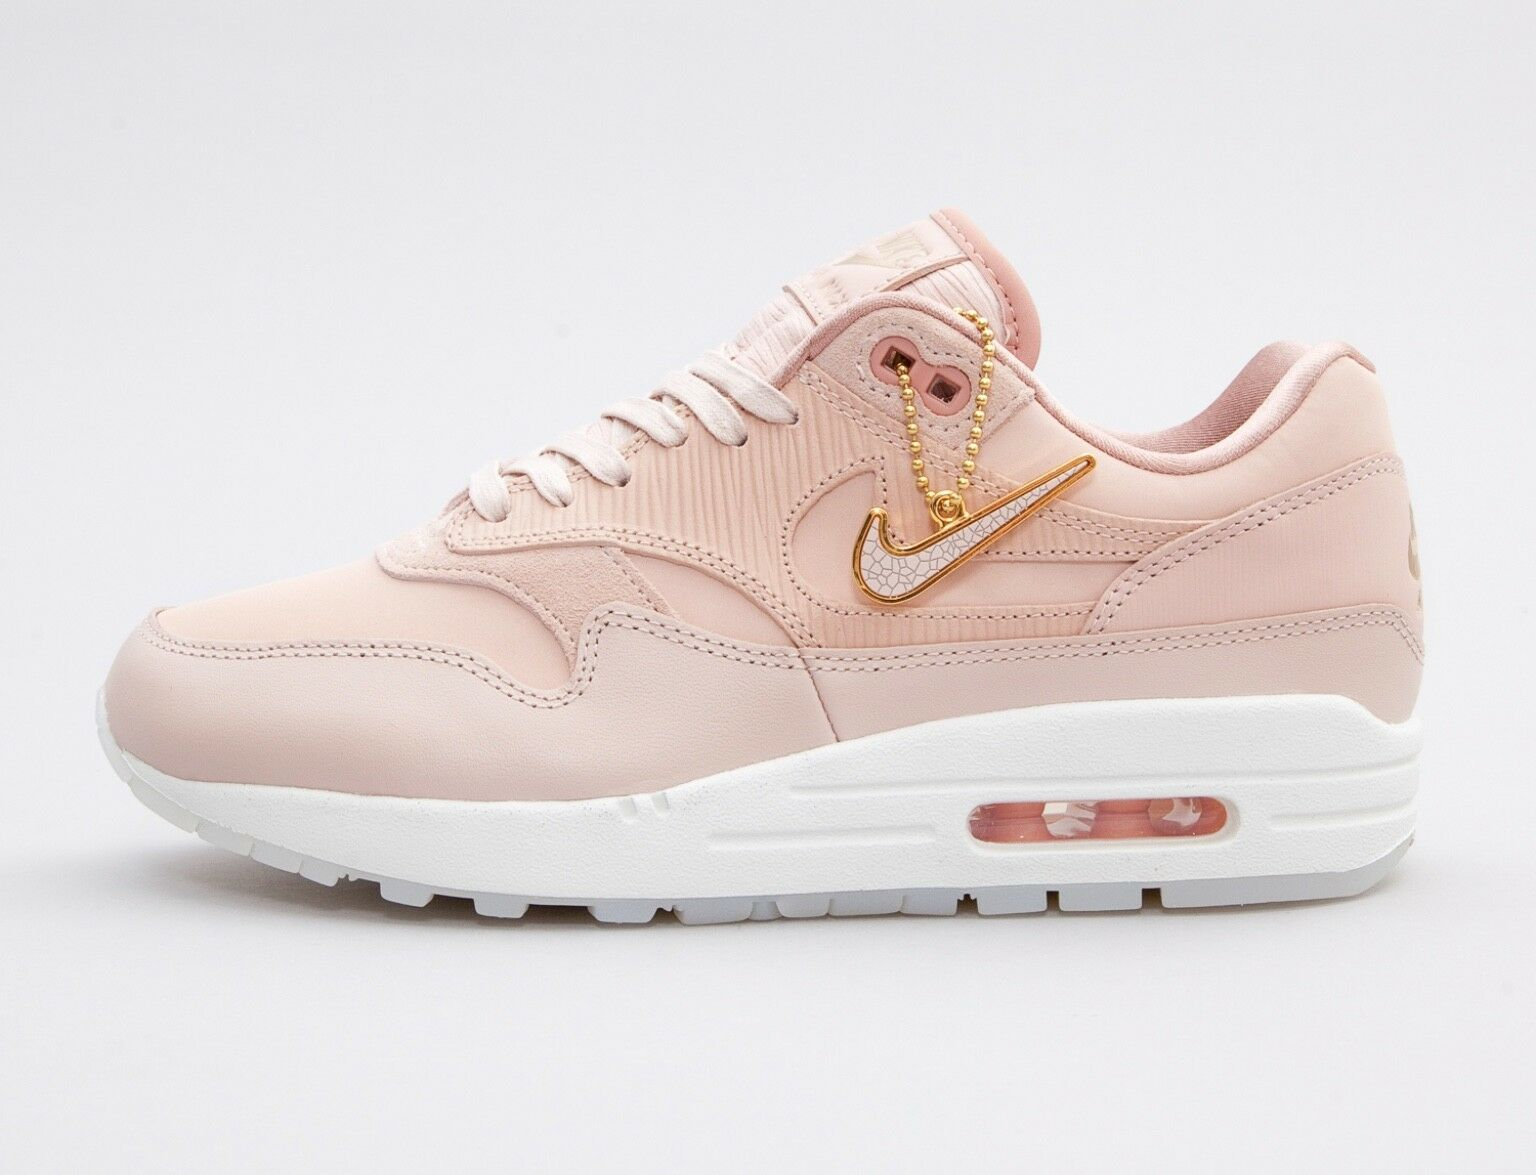 femmes Nike Air Max 1 PRM Trainer 454746-206 UK8/EU42.5/US10.5 Particle Beige